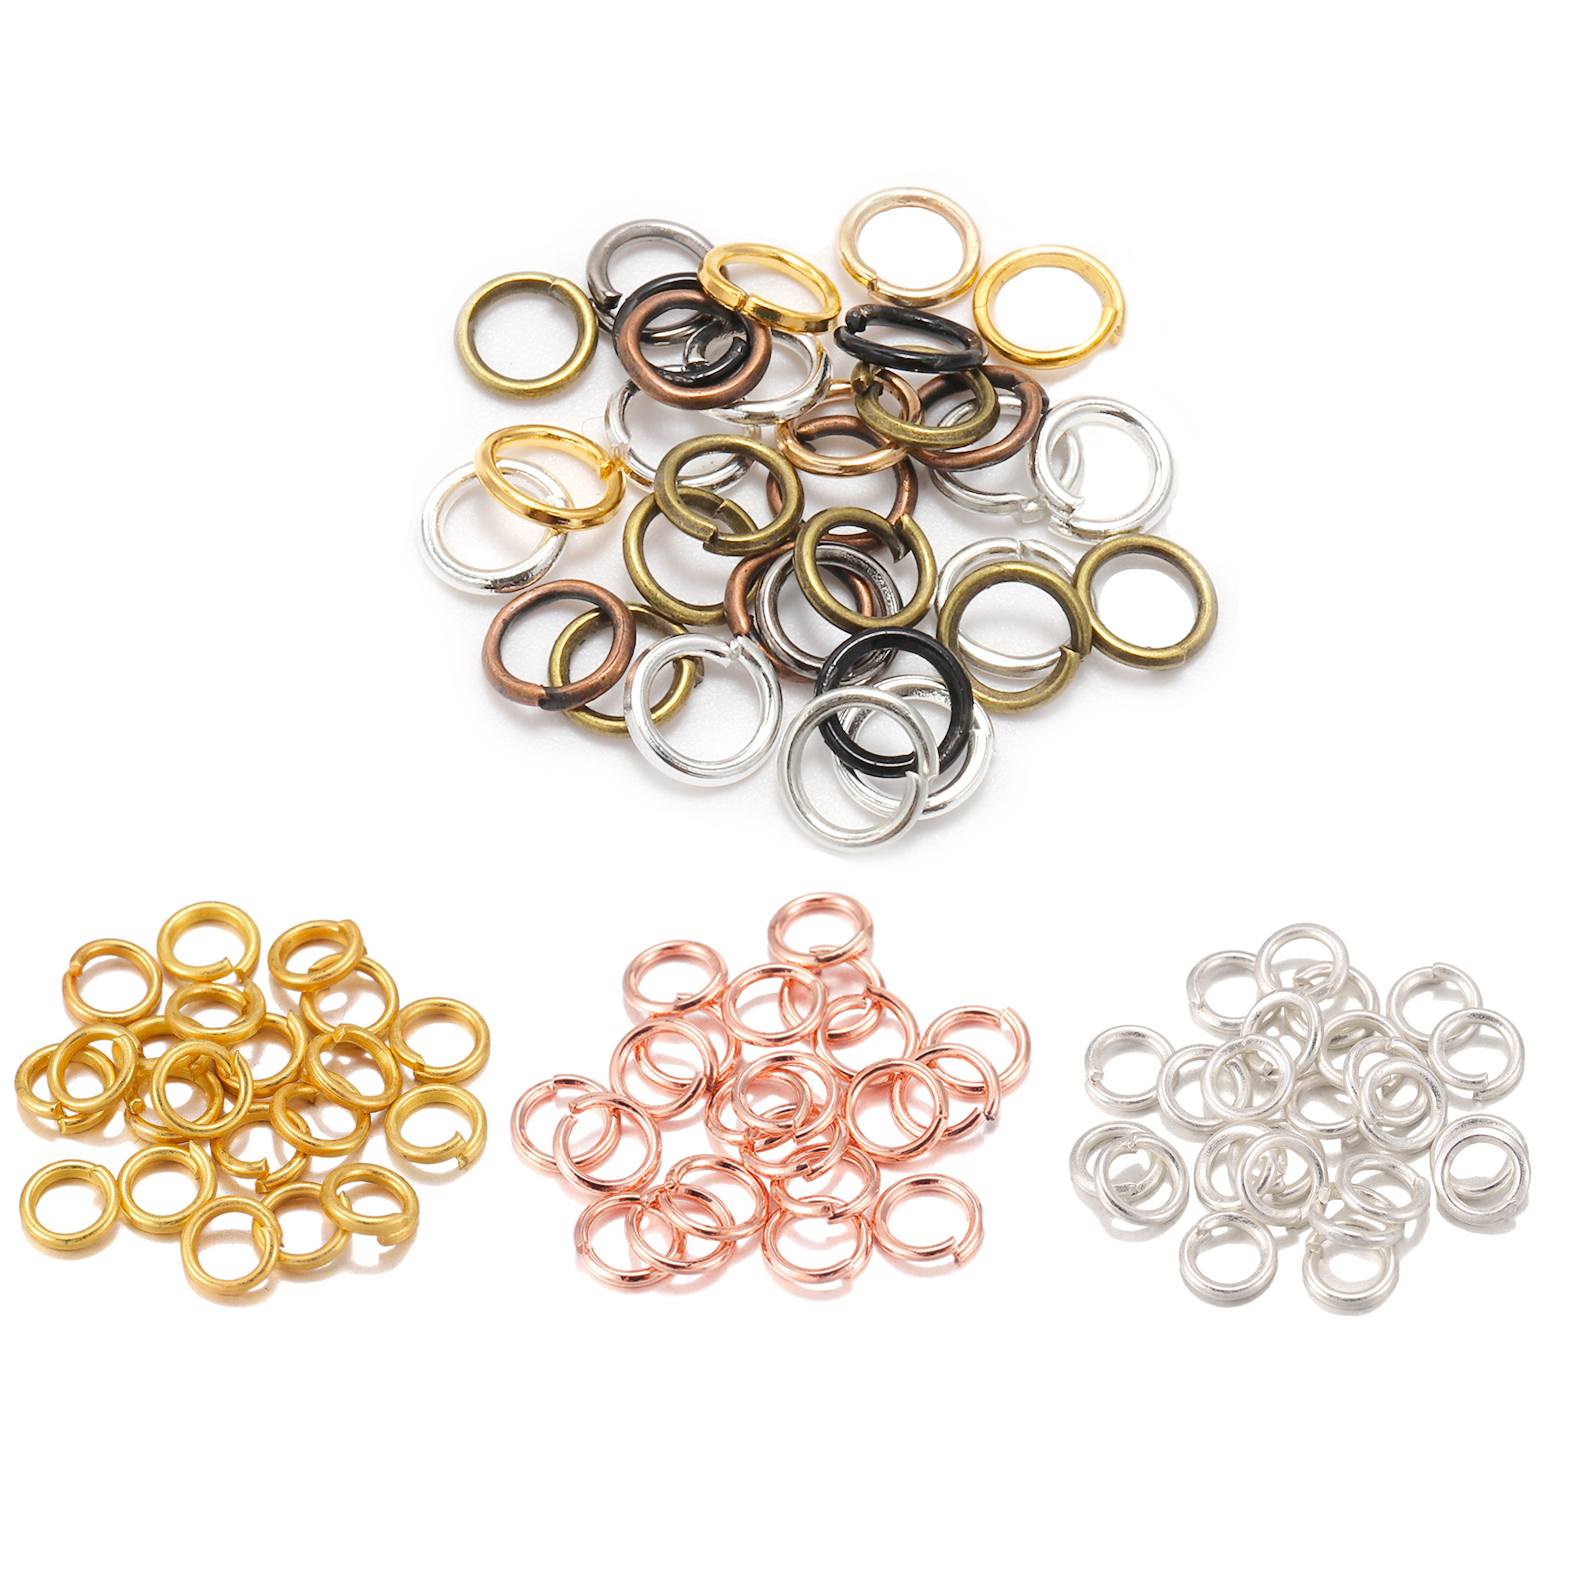 200pcs 3-16mm Gold Silver Rhodium Metal Jump Ring Open Single Loops Split Rings Supplies For DIY Jewelry Handmade Accessories